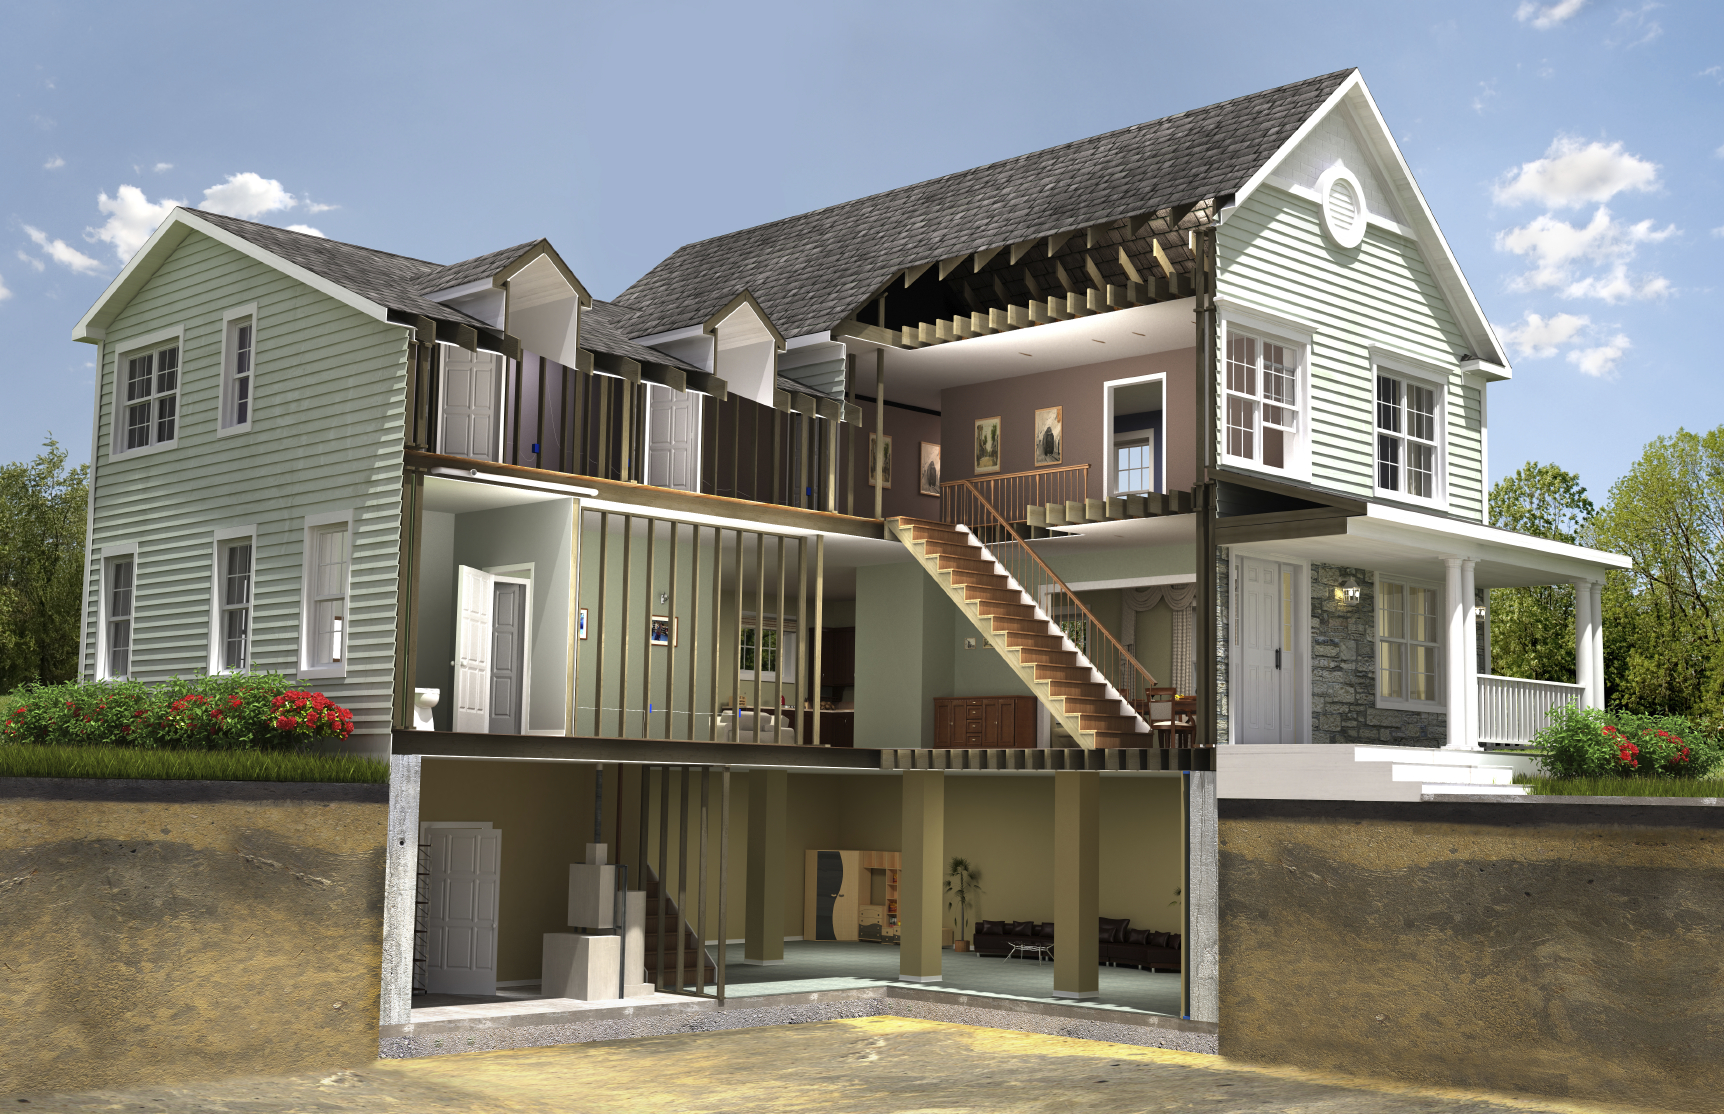 Designing your dream home with buildblock icfs for Icf home designs